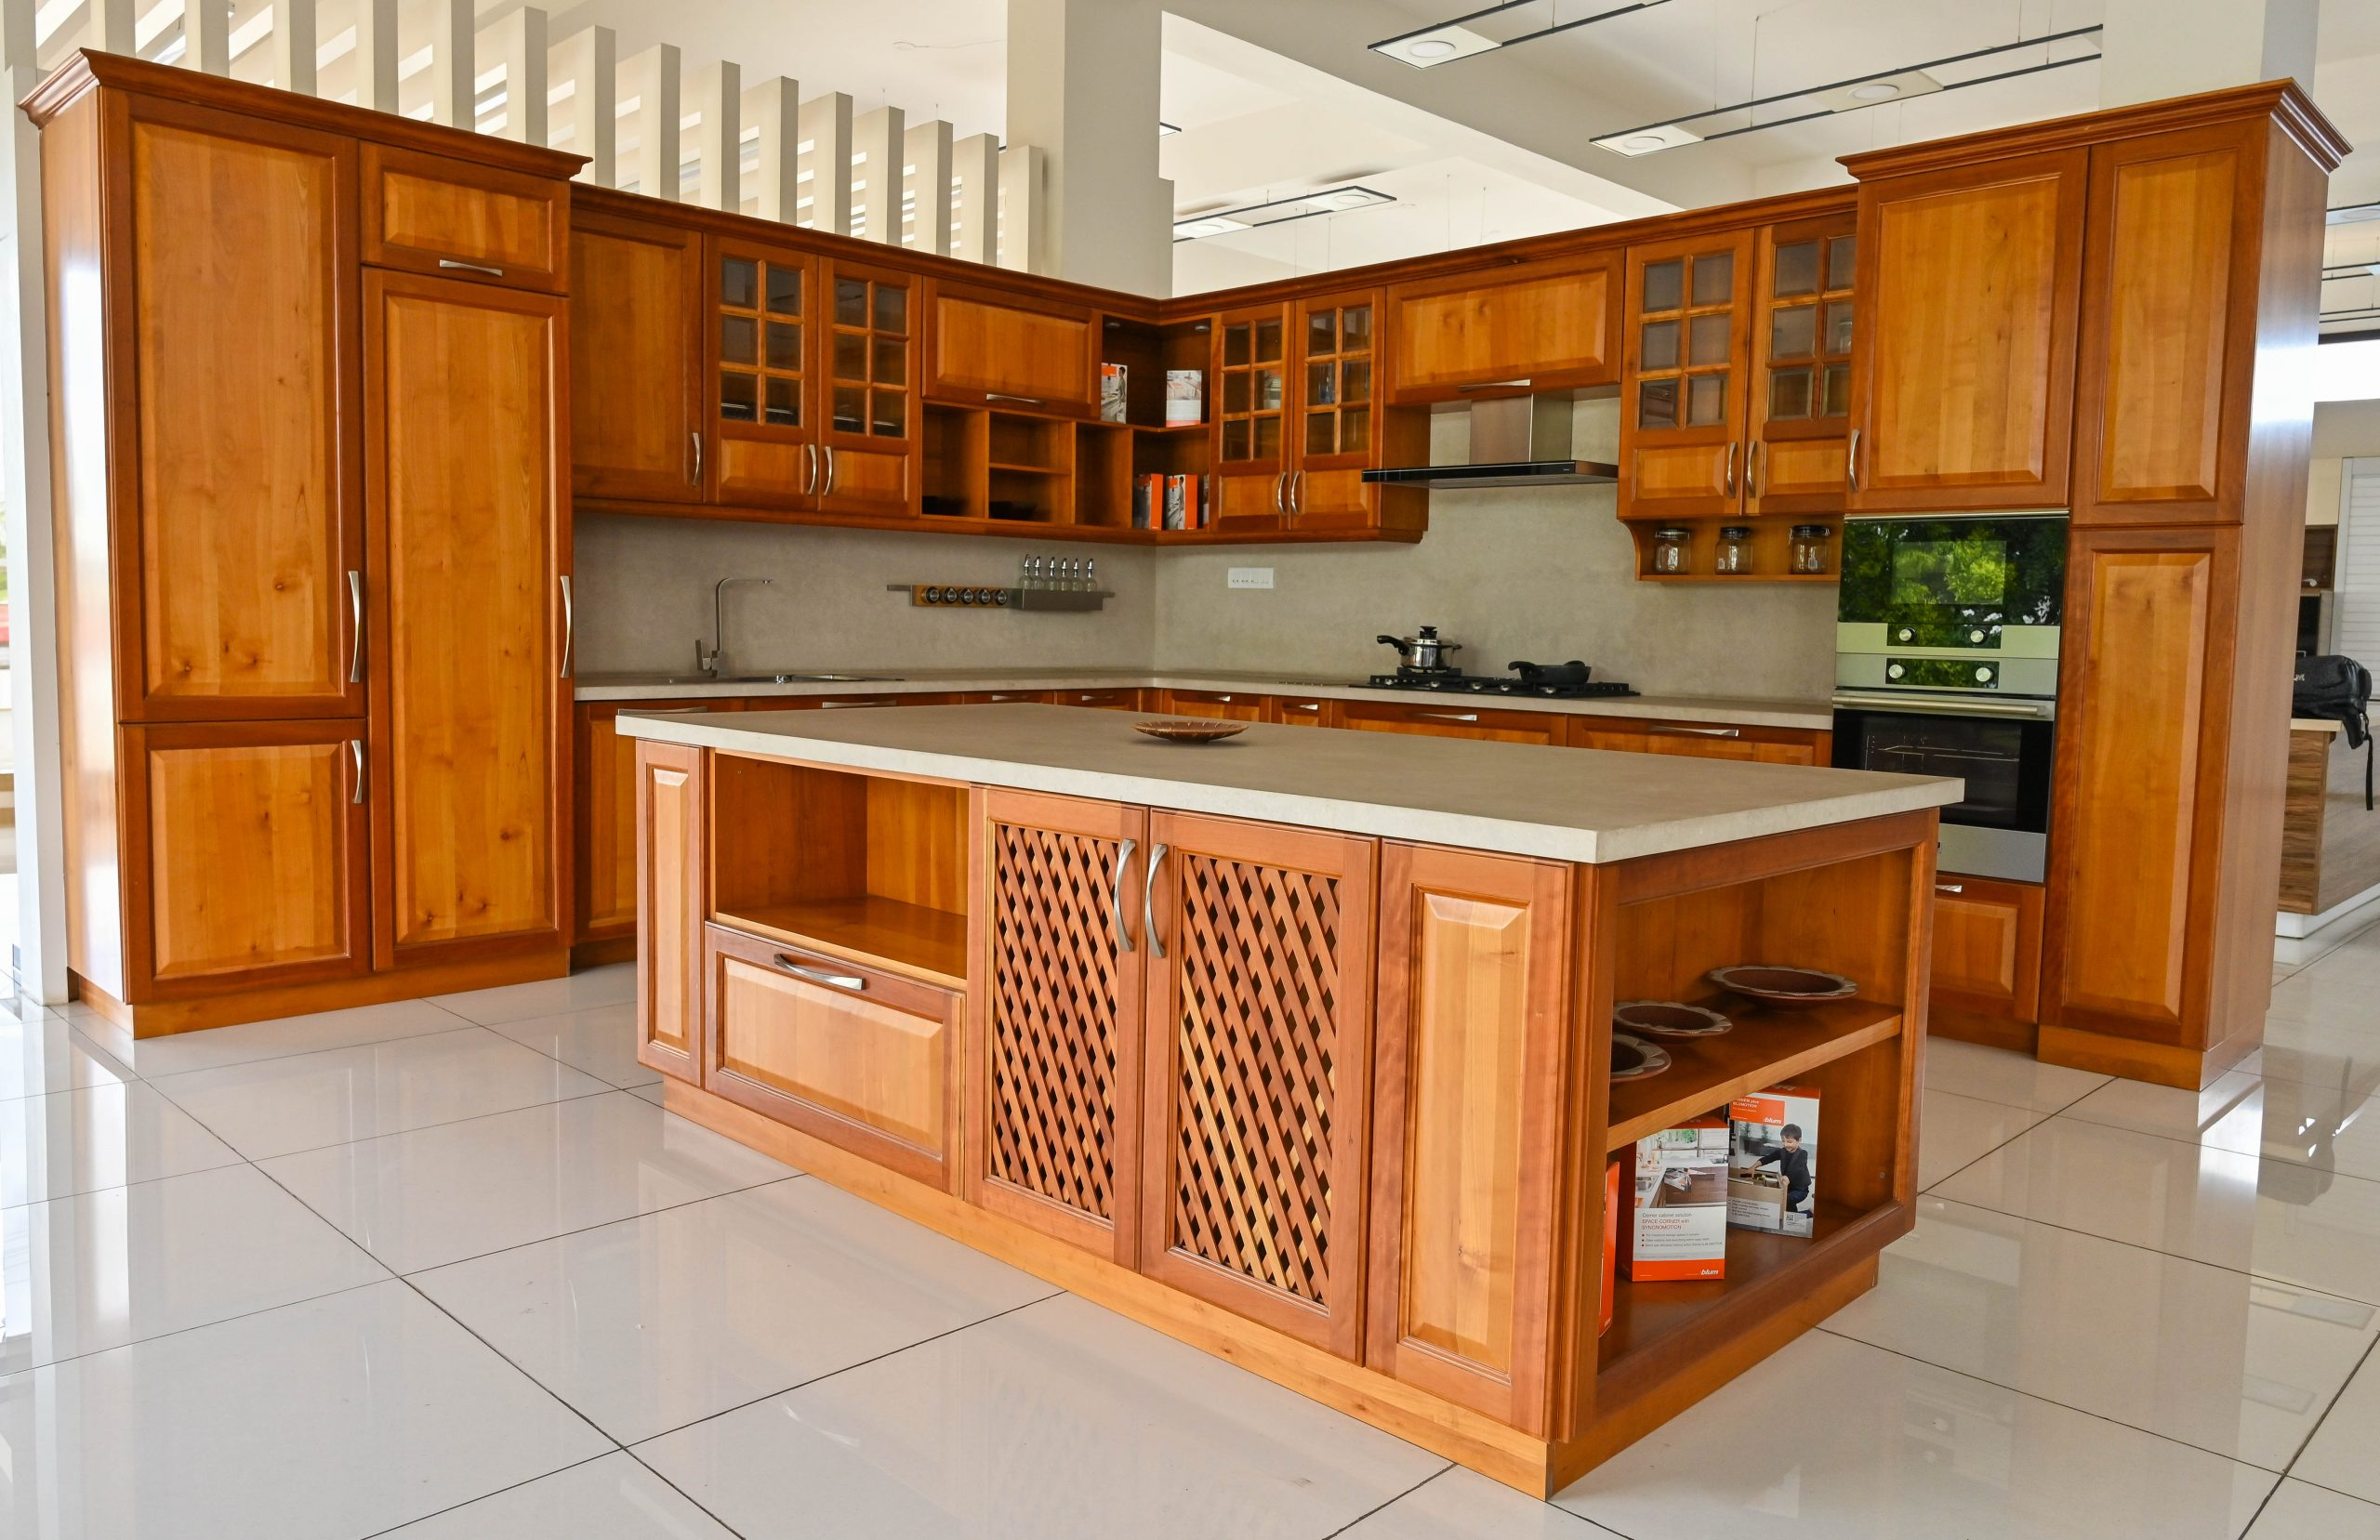 A well furnished kitchen